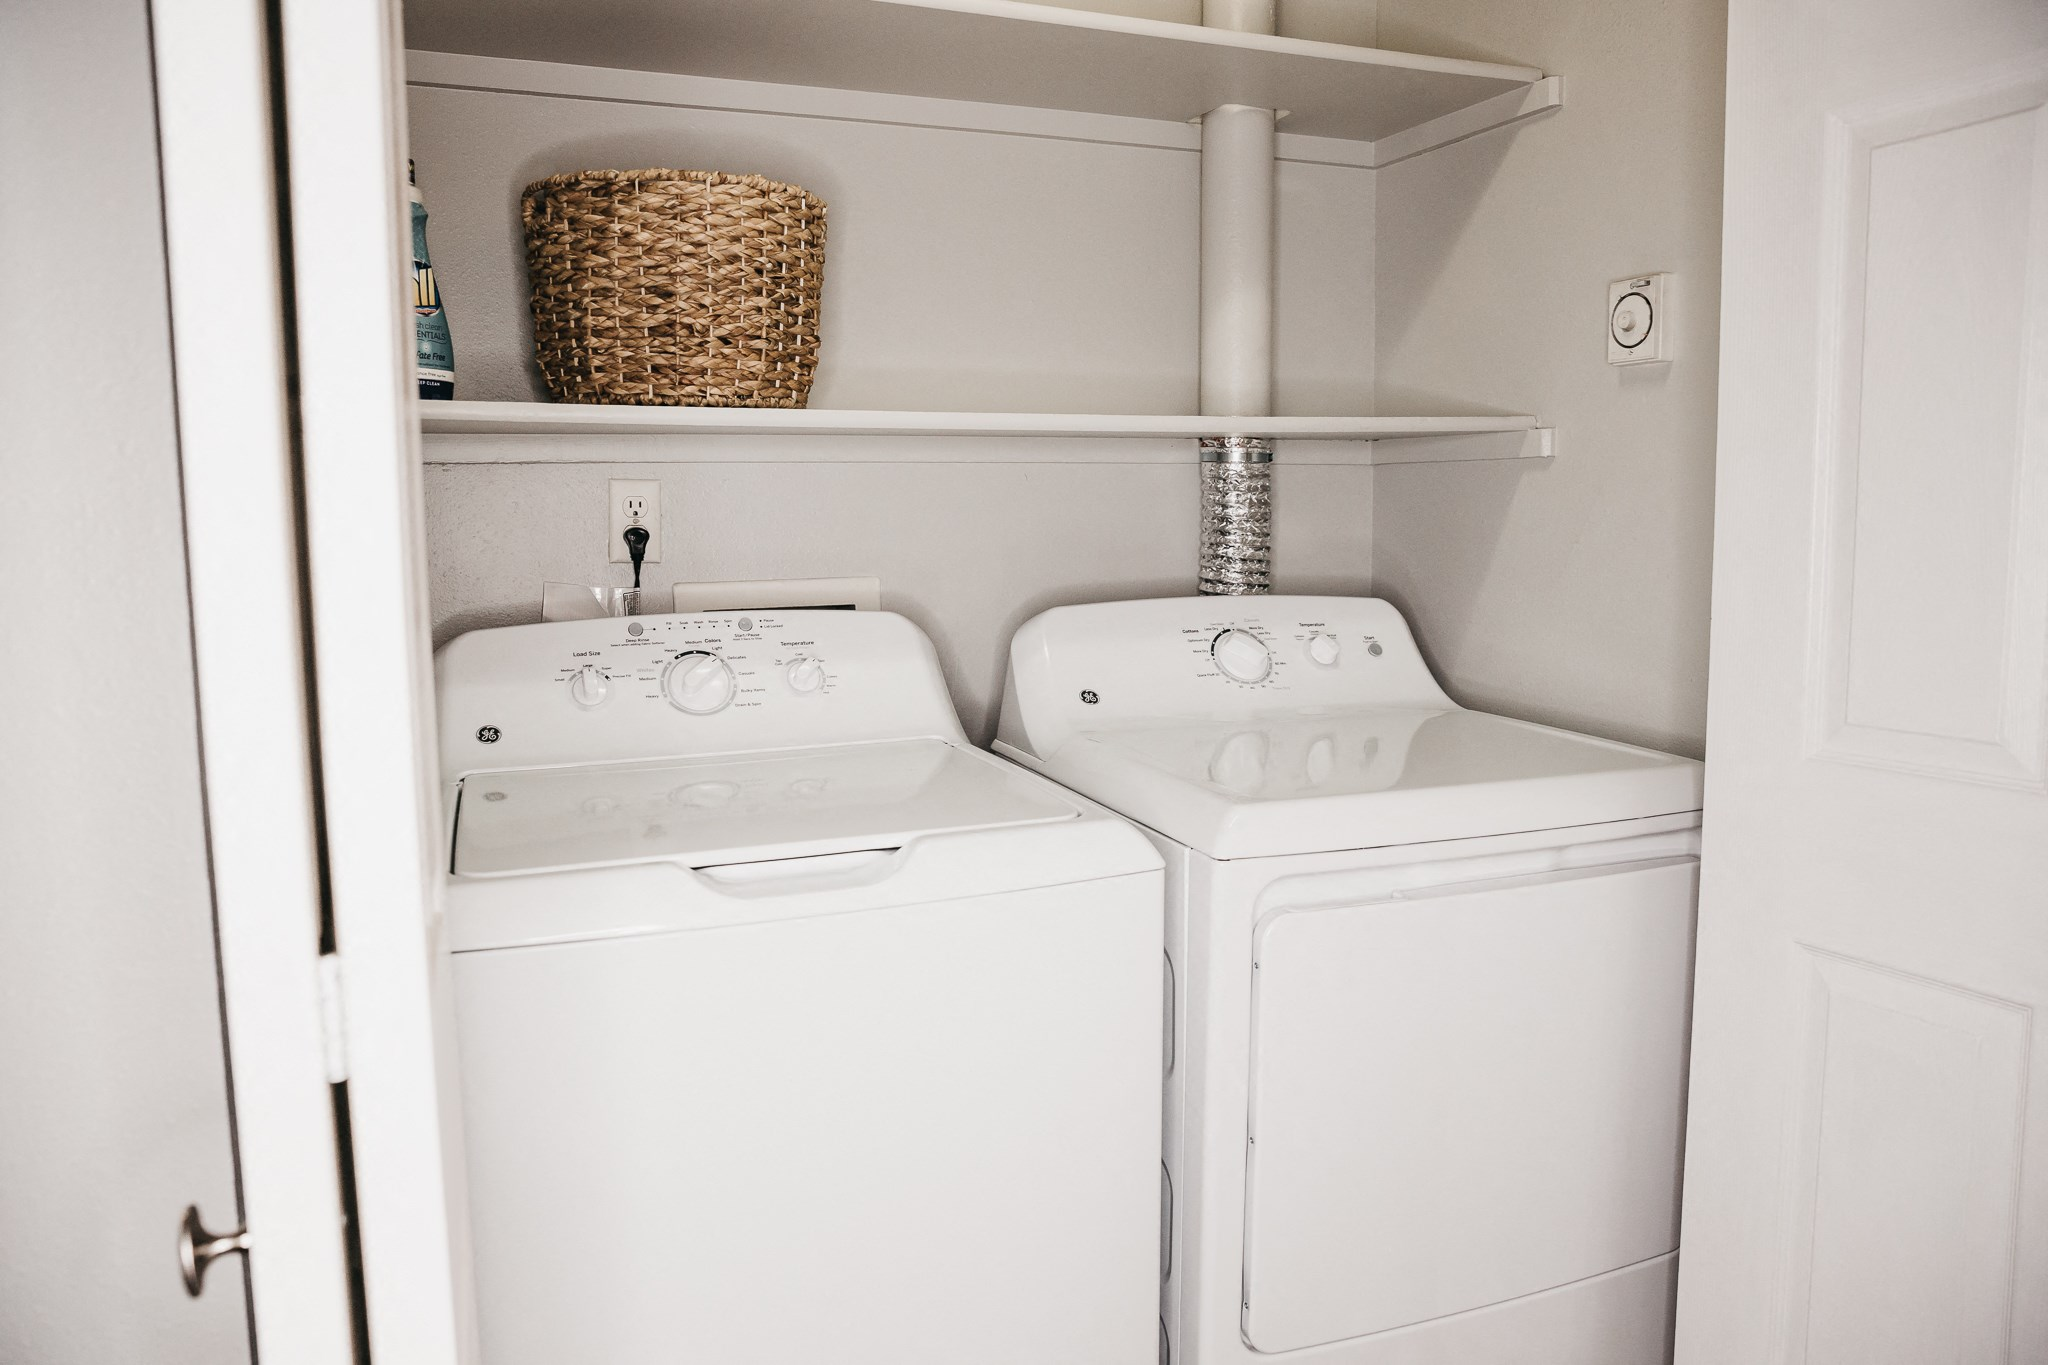 GoGo West Model  Washer and Dryer